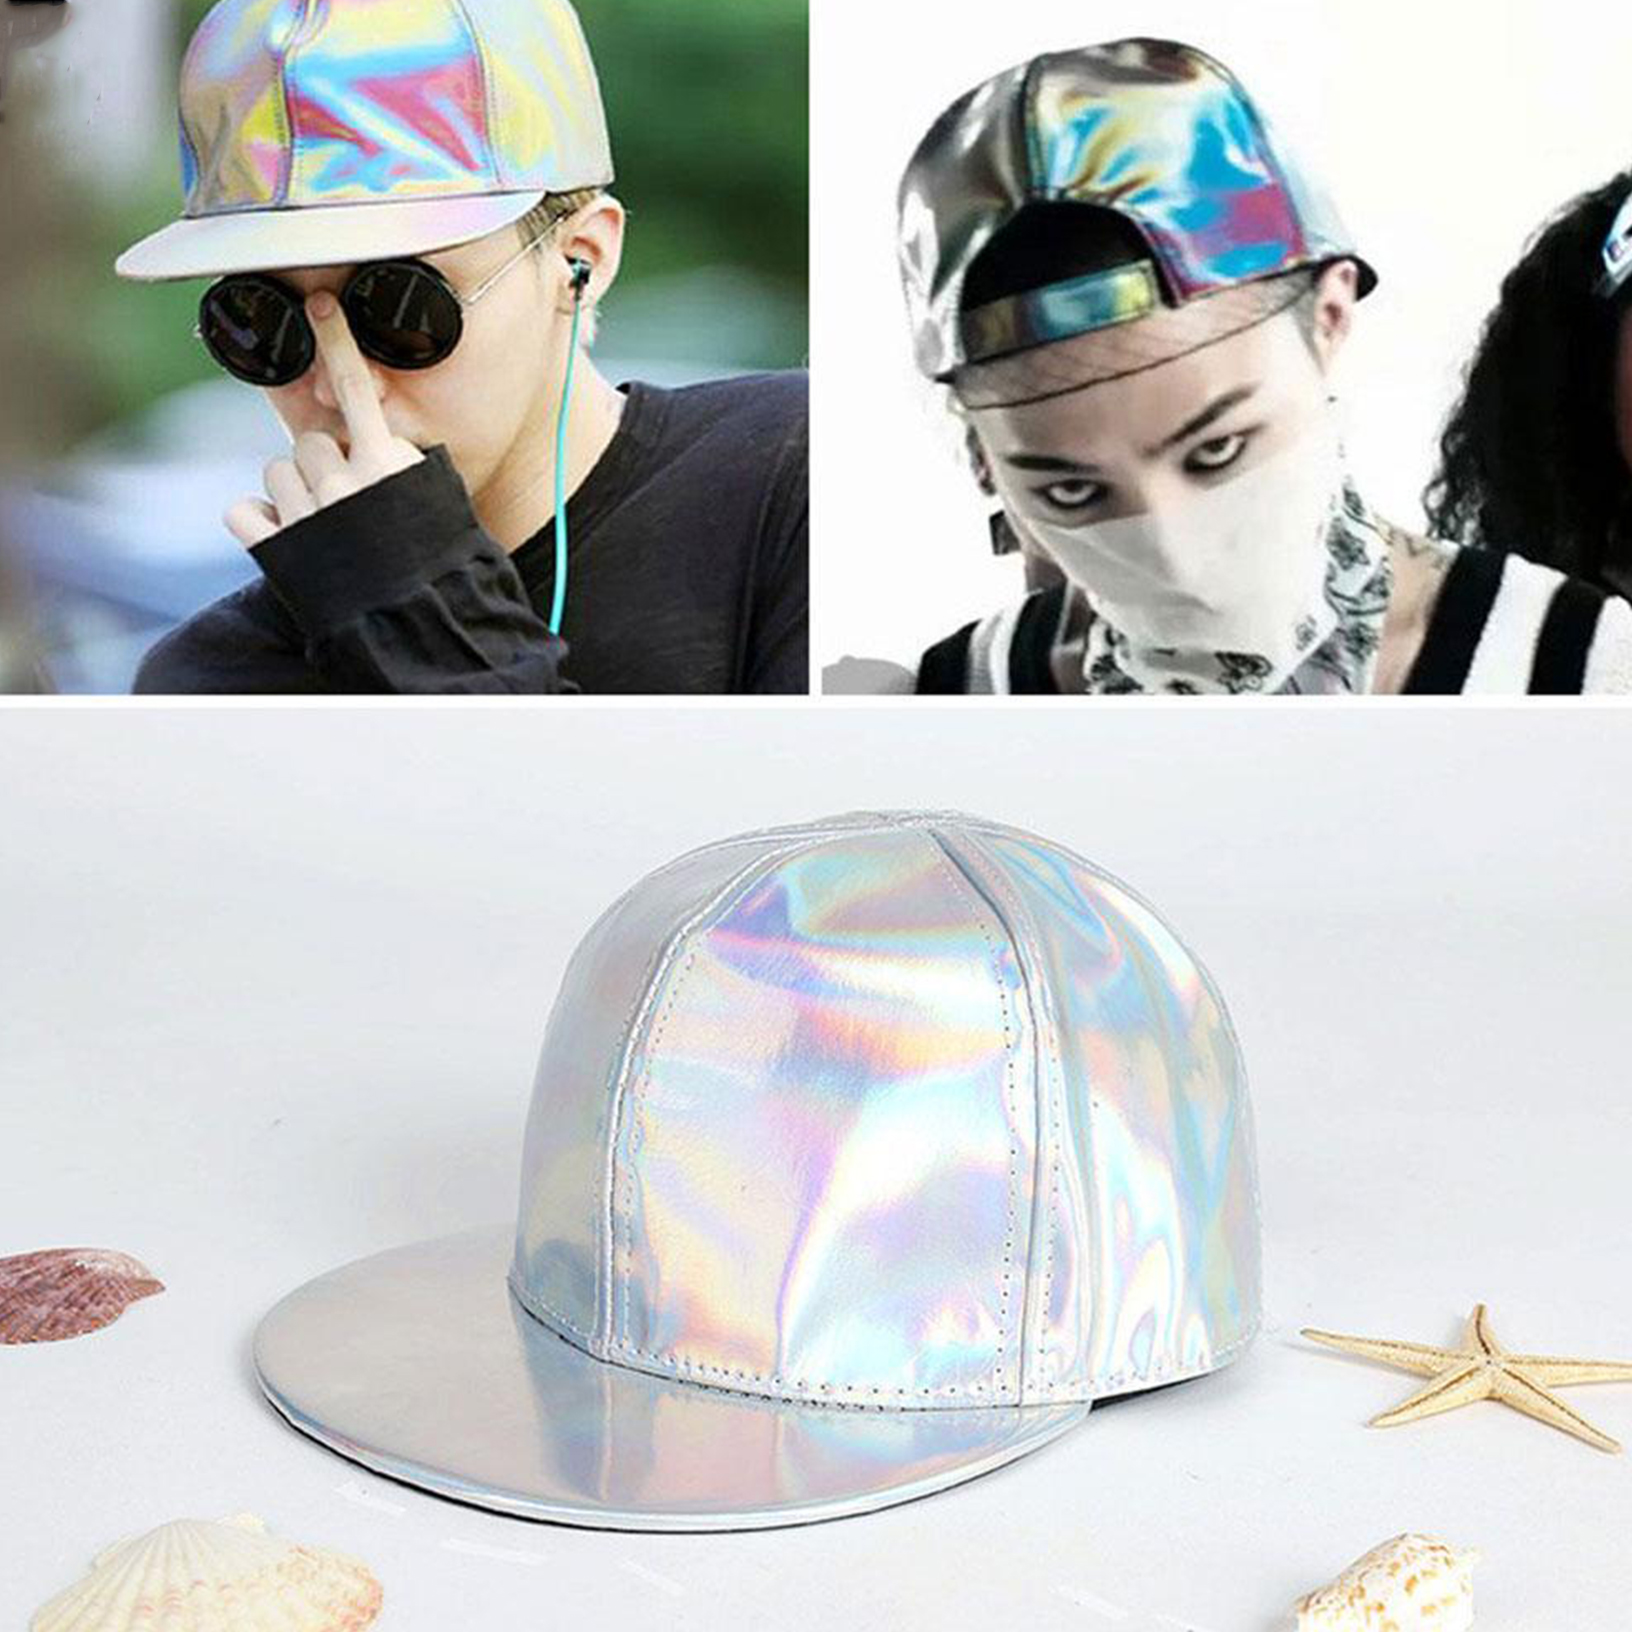 Details about Bigbang G-dragon Color Changing Snapback BACK TO THE FUTURE  Cap MARTY MCFLY Hat